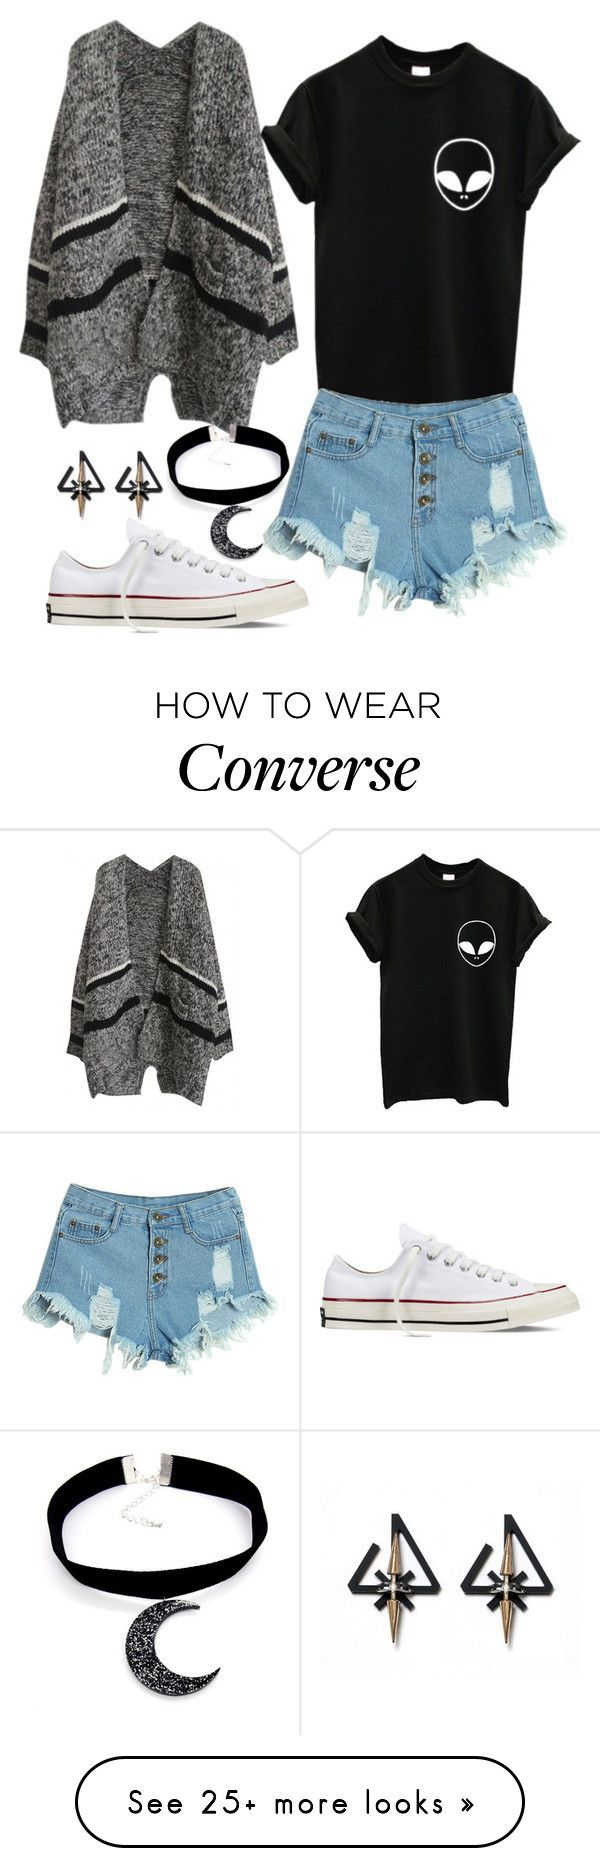 """""""Casual"""" by chap15906248 on Polyvore featuring WithChic, Converse, women's clothing, women's fashion, women, female, woman, misses and juniors"""